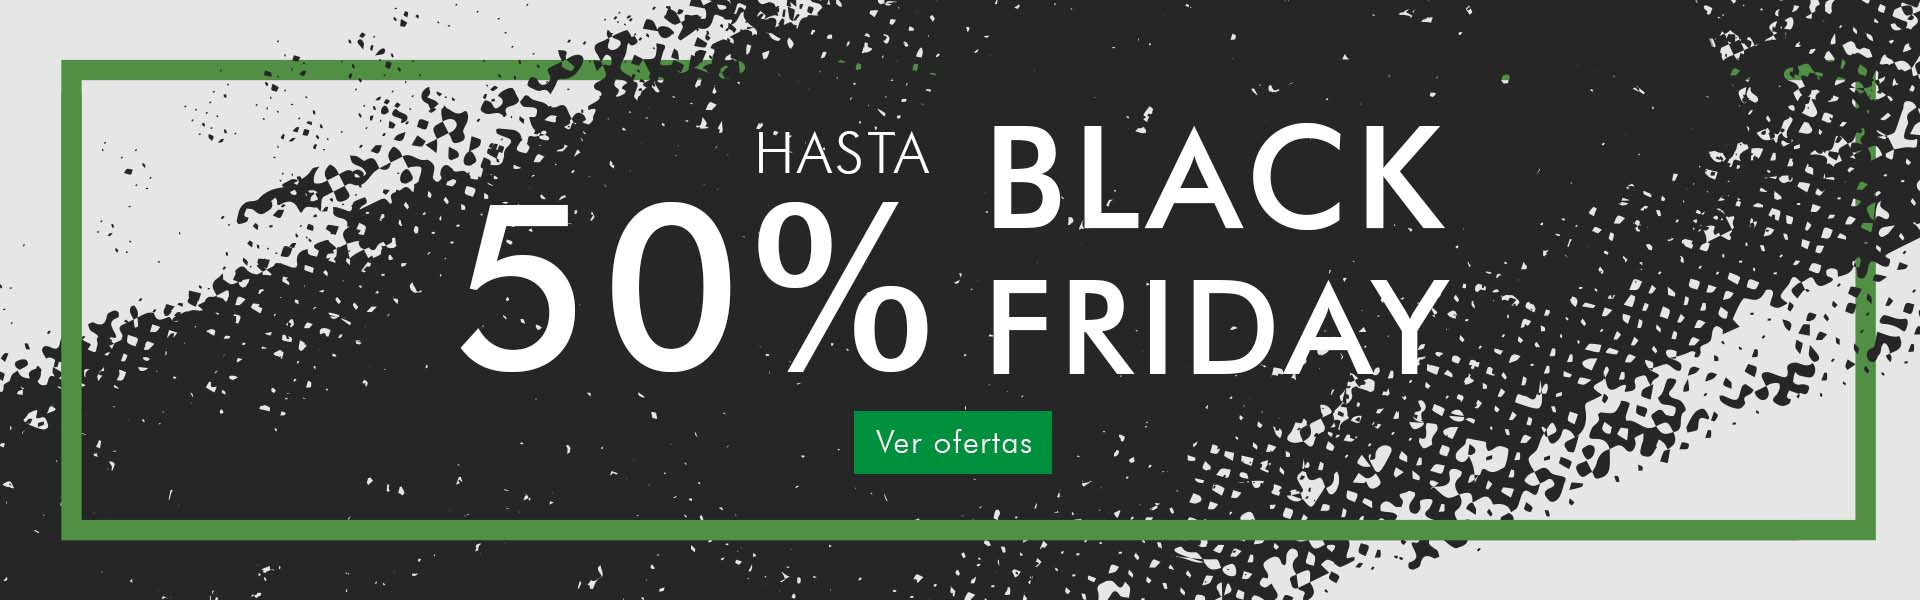 Banner-blackfriday-1920x600